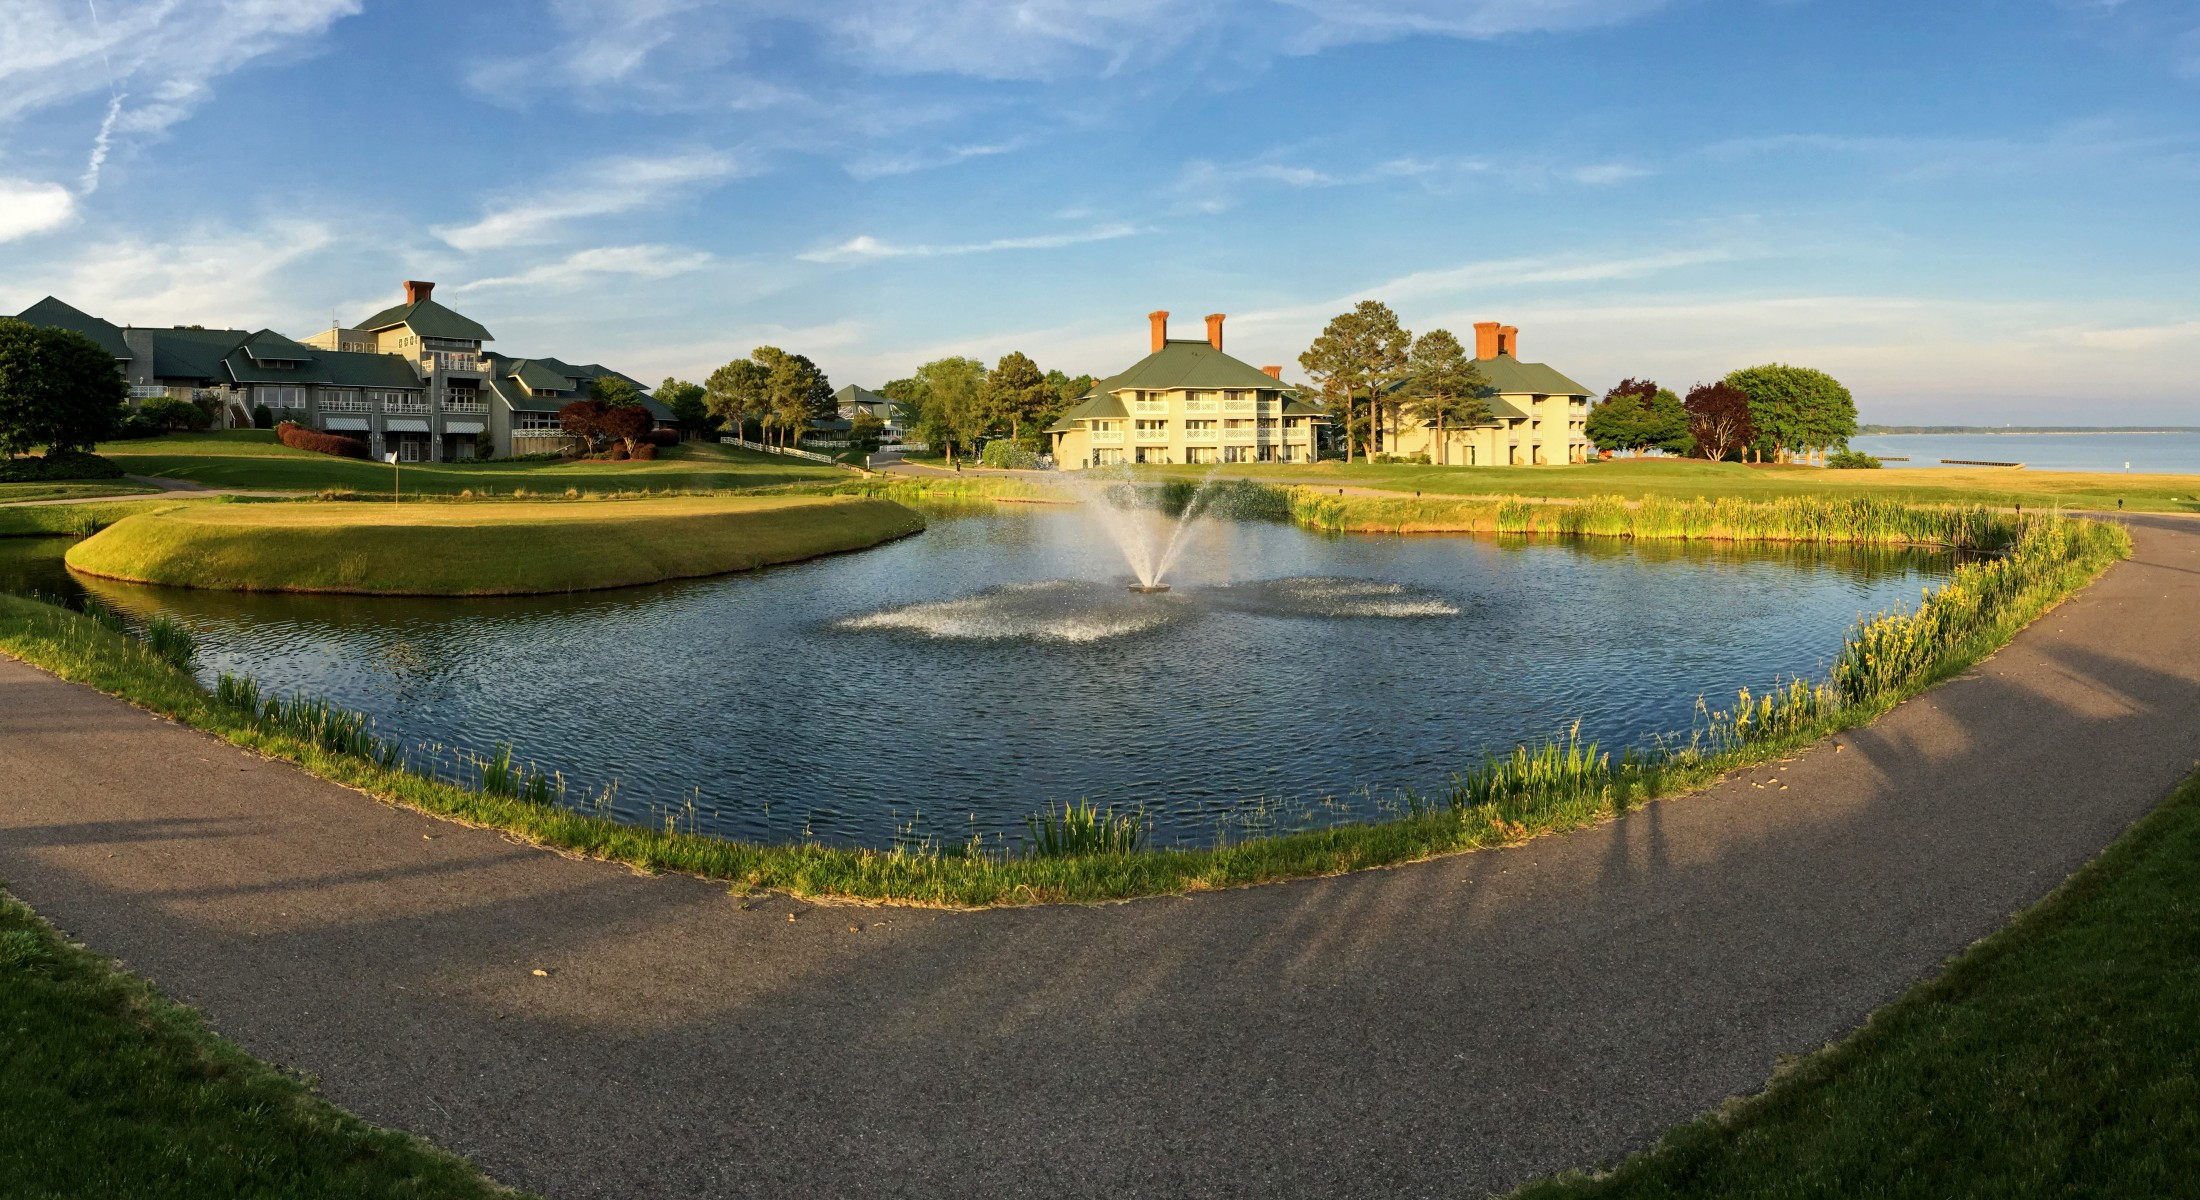 Panoramic View of South Exterior of Kingsmill